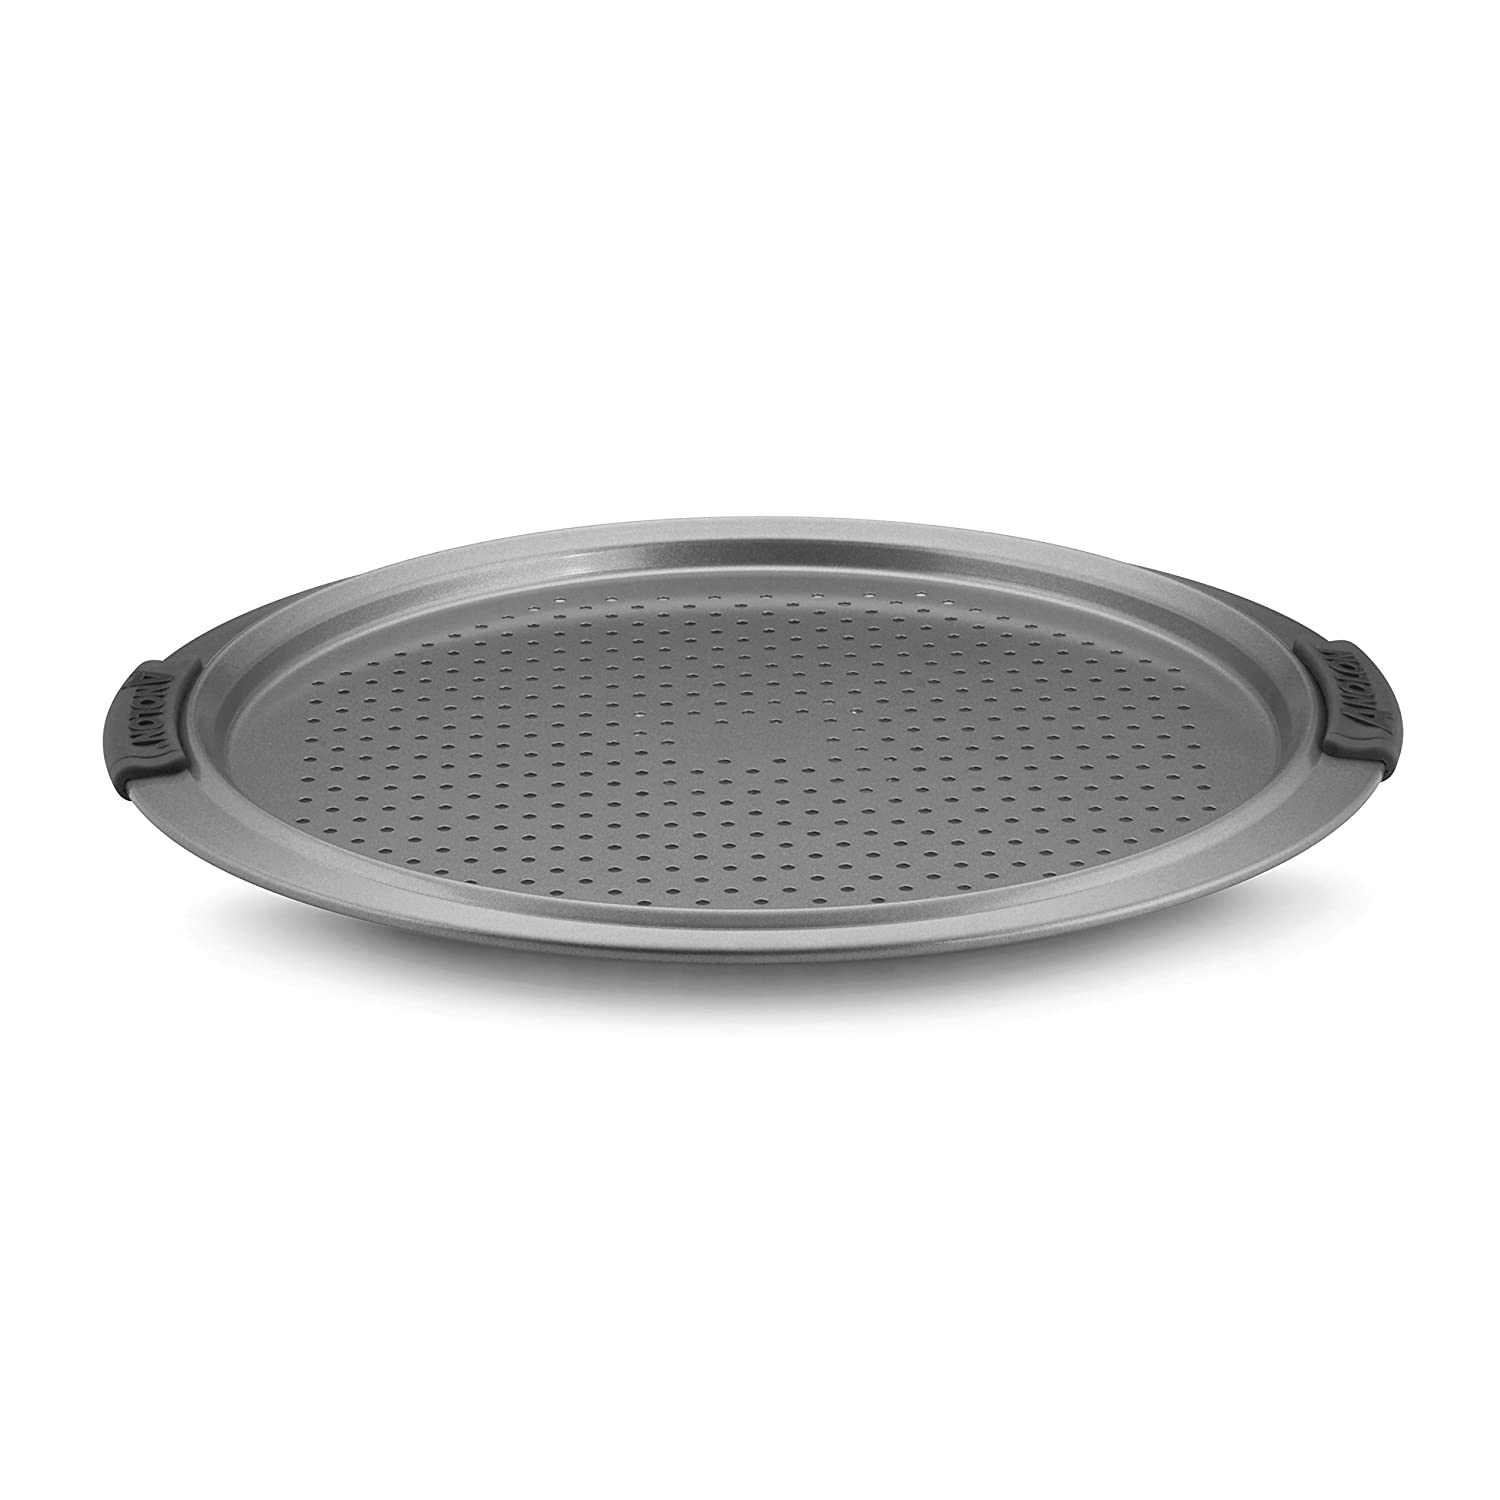 Anolon Advanced Nonstick Bakeware 13-Inch Pizza Crisper, Gray with Silicone Grips 54716